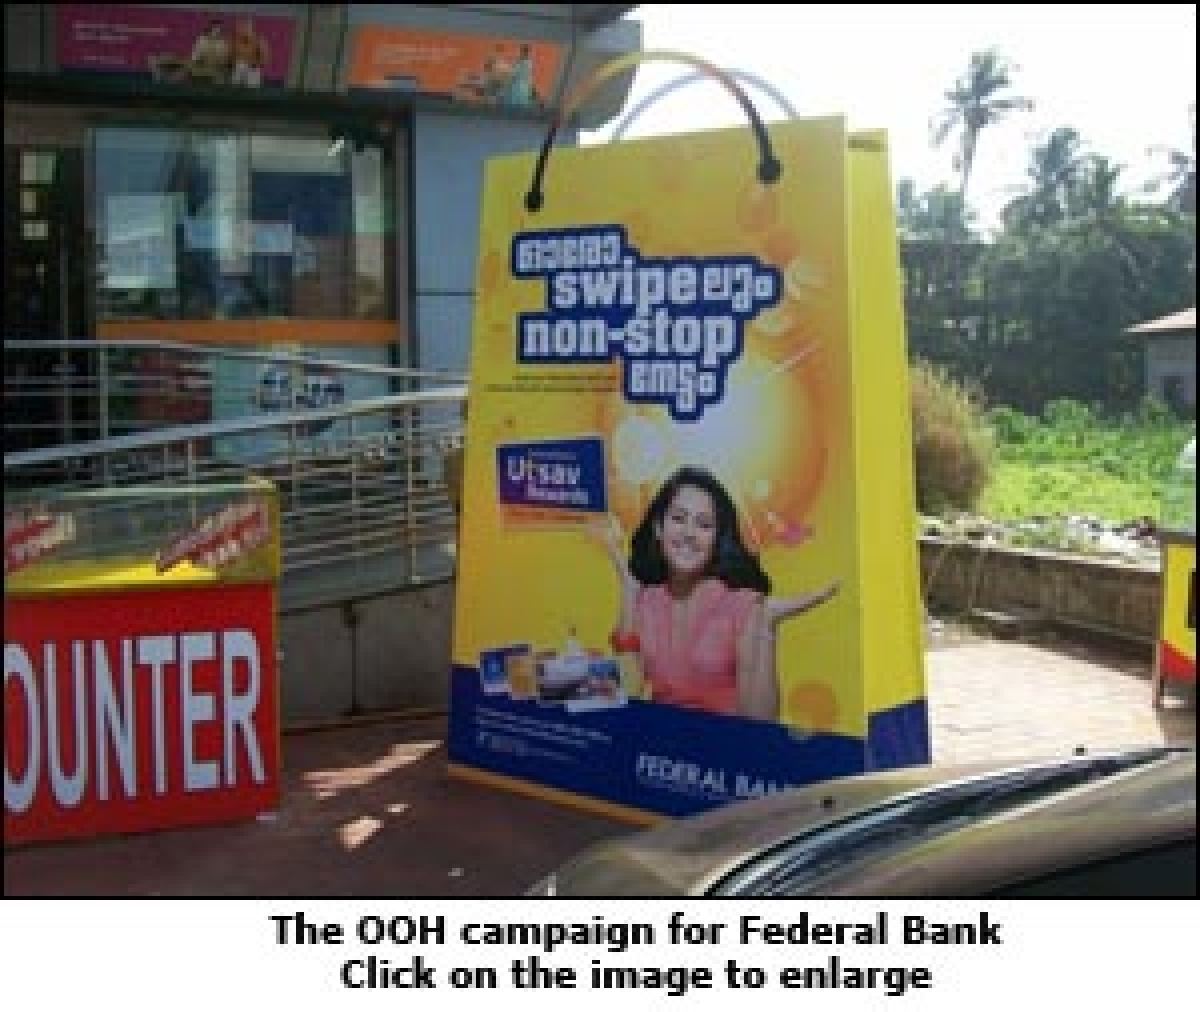 Federal Bank creates giant shopping bags to promote debit card loyalty programme